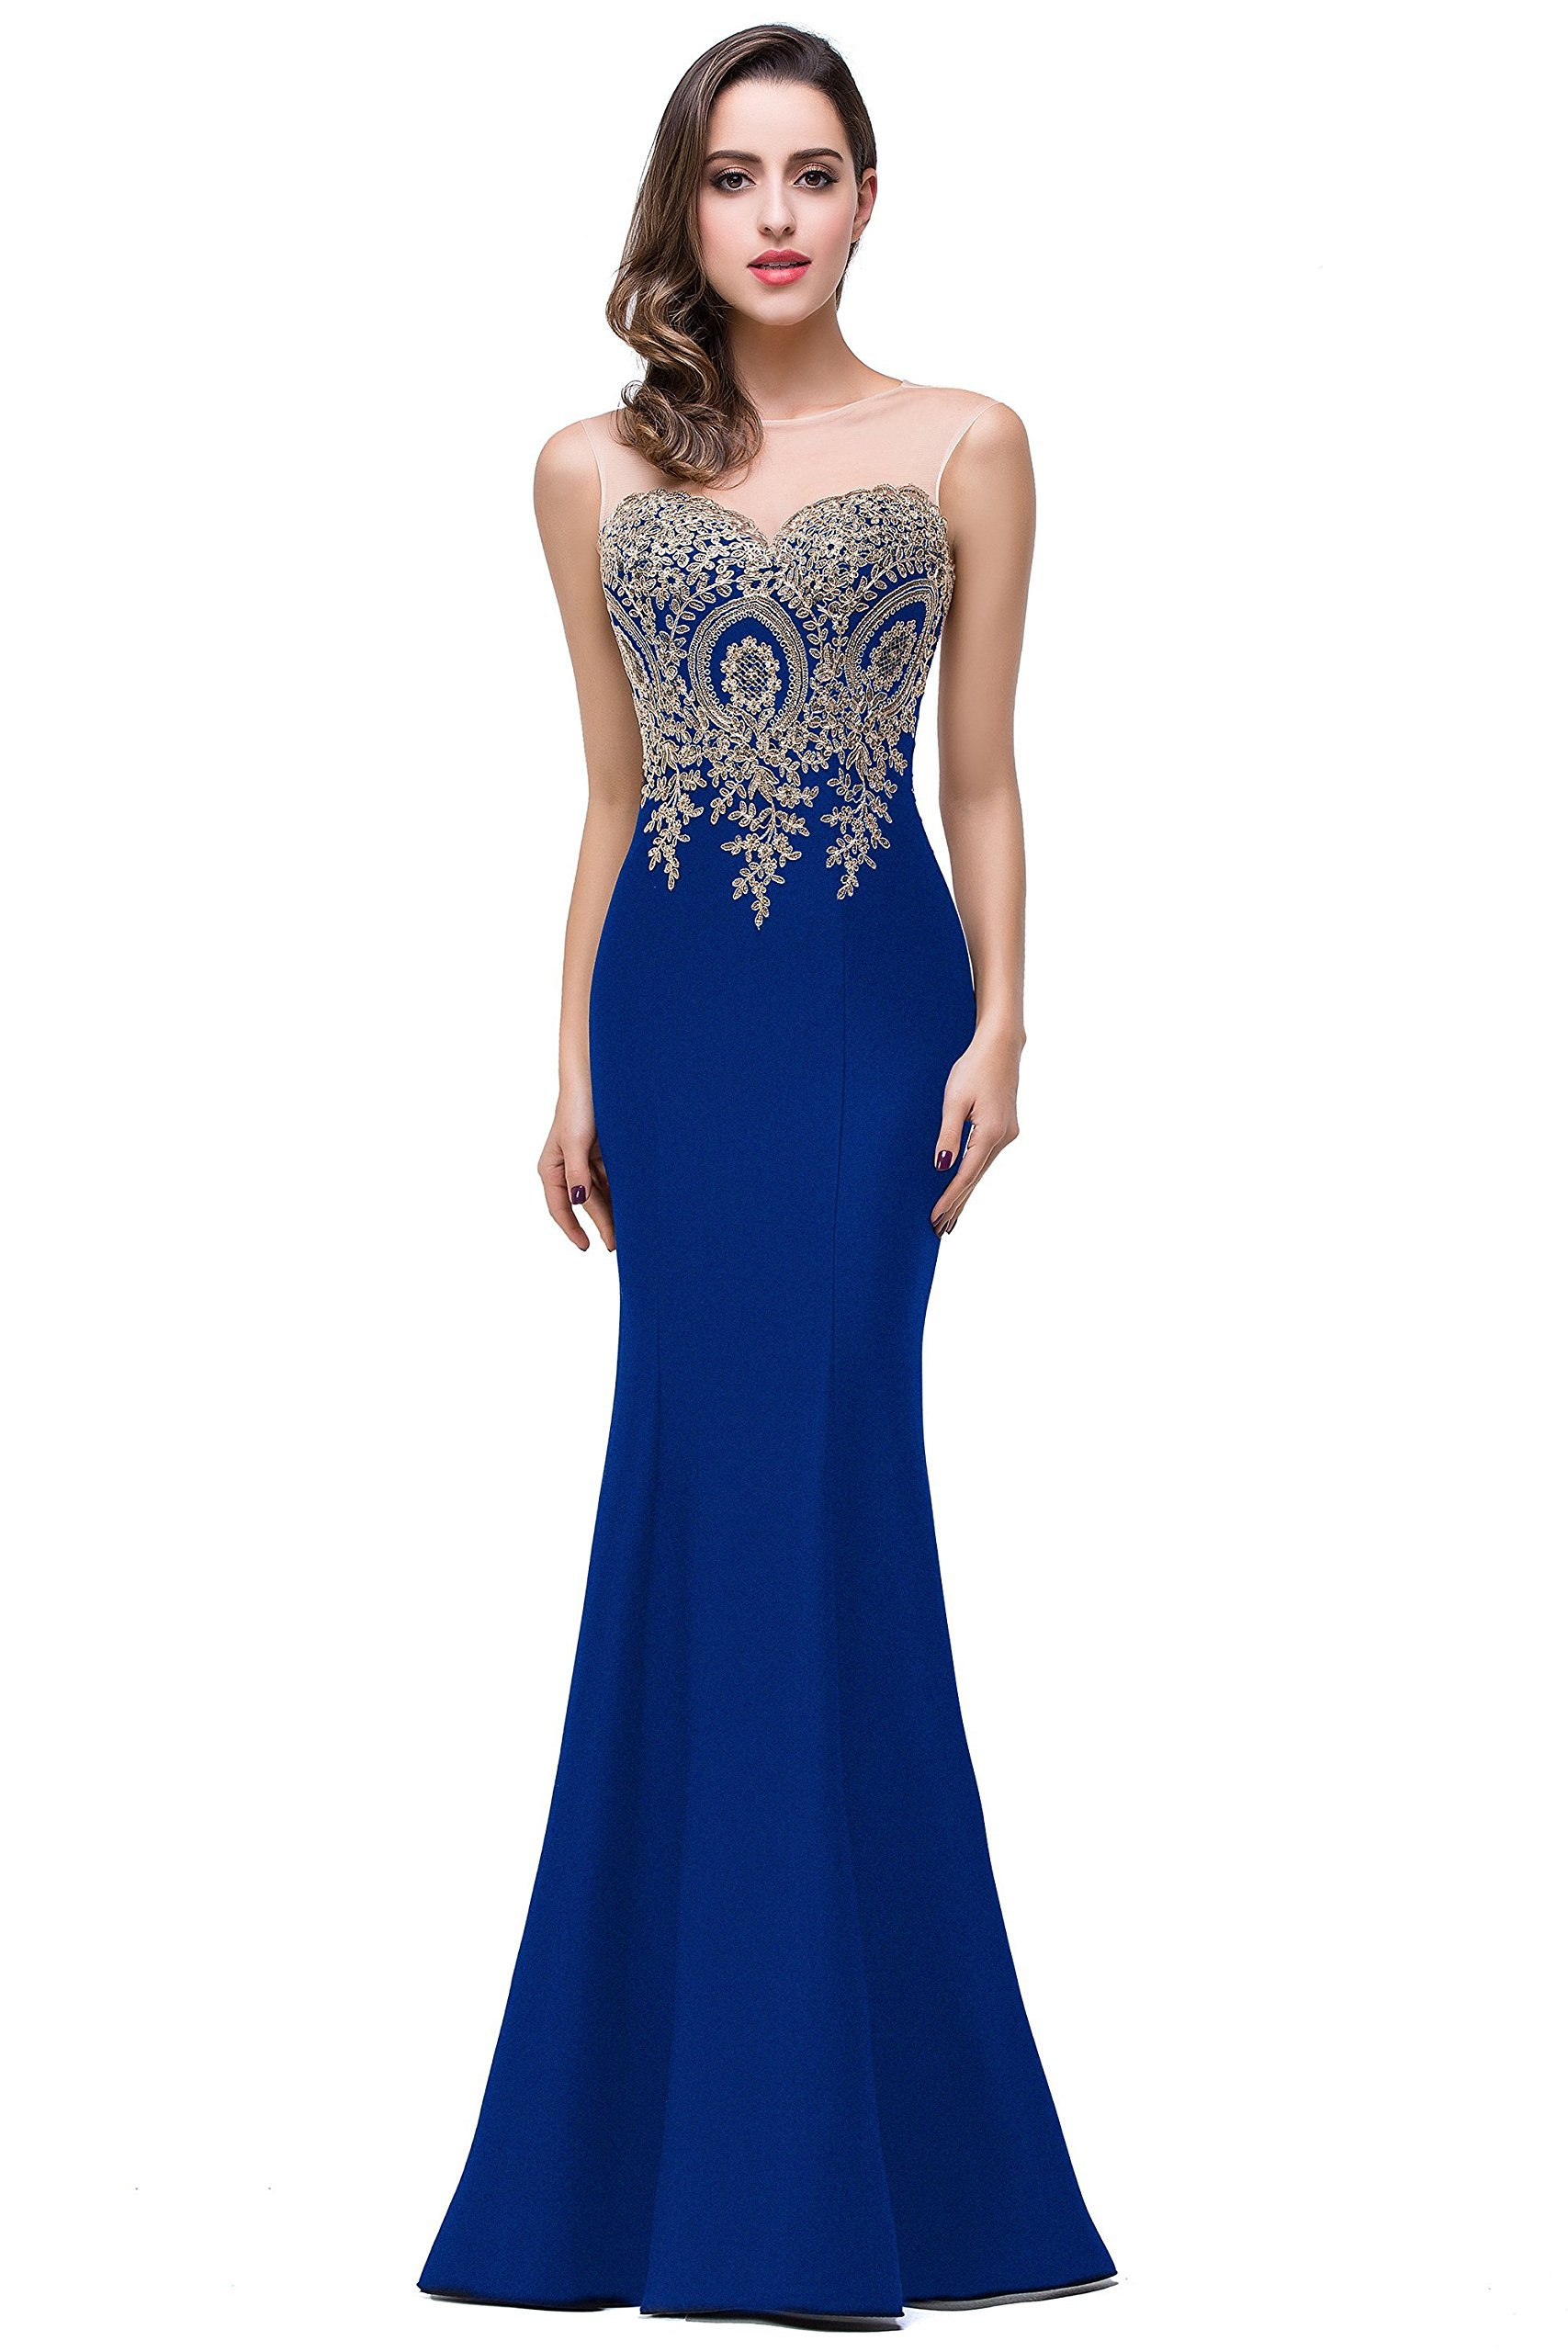 Prom Dresses - Women's Double V-Neck Sequins Patchwork Mermaid Dress 7767